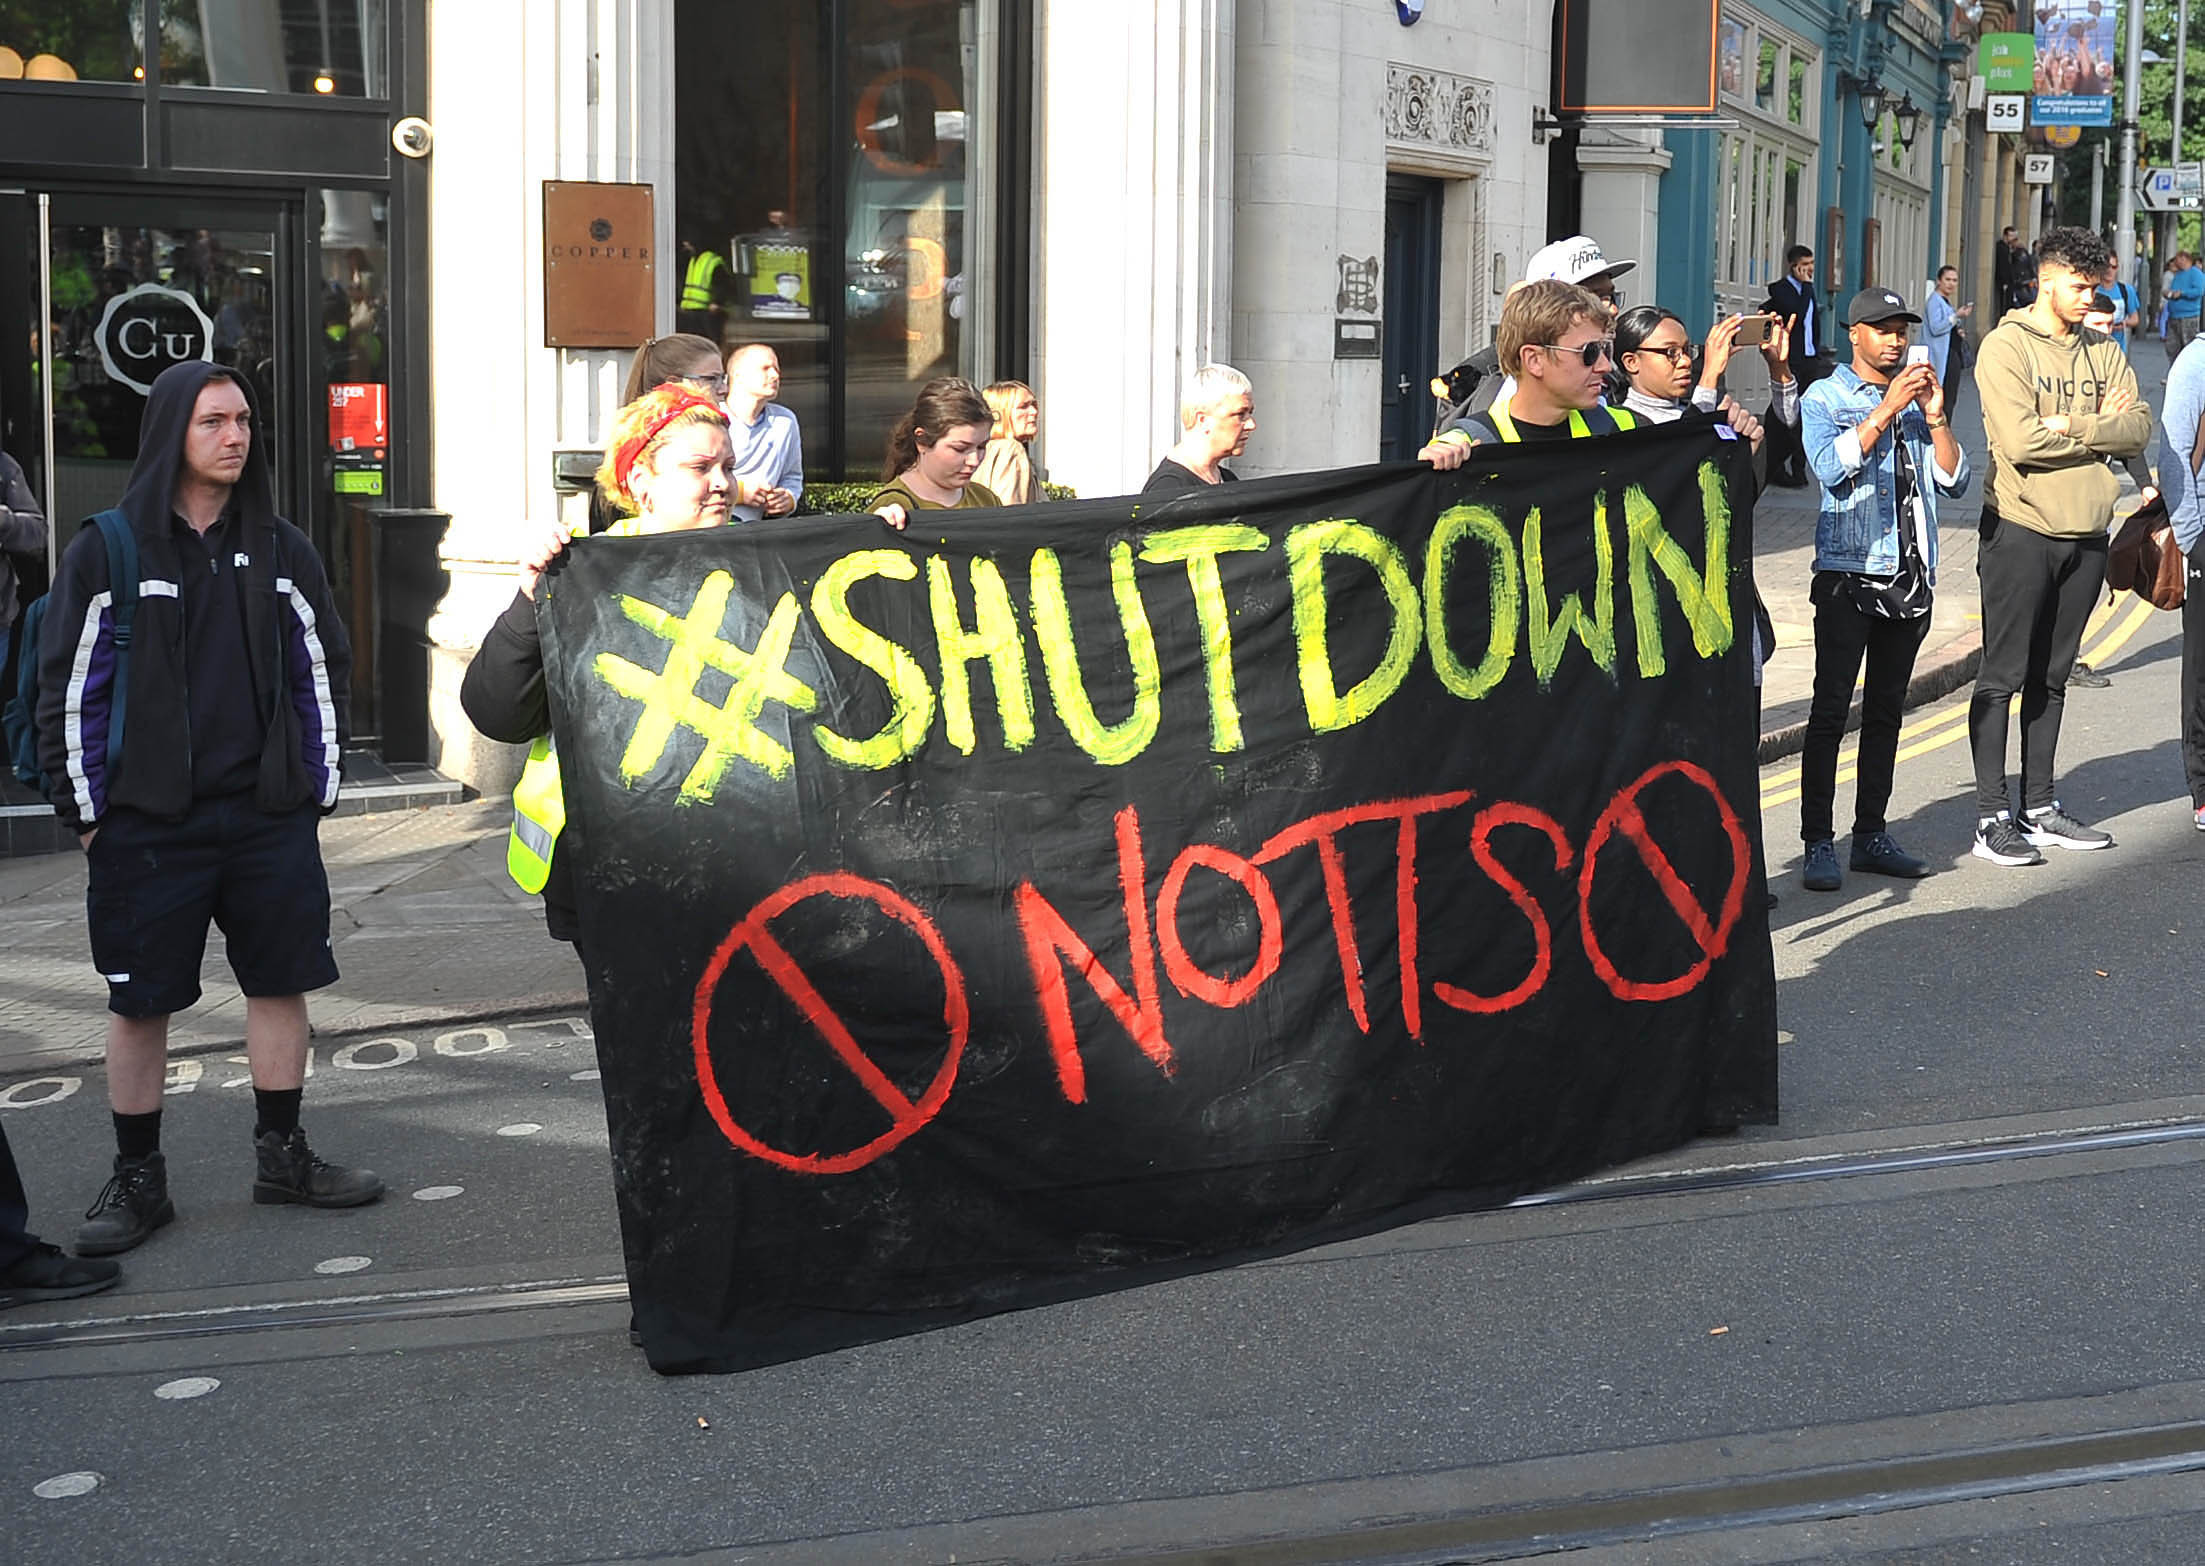 Black Lives Matter protestors in Nottingham, in the UK, shut down part of the city centre tram and bus network to protest for social justice on Friday August 5, 2016